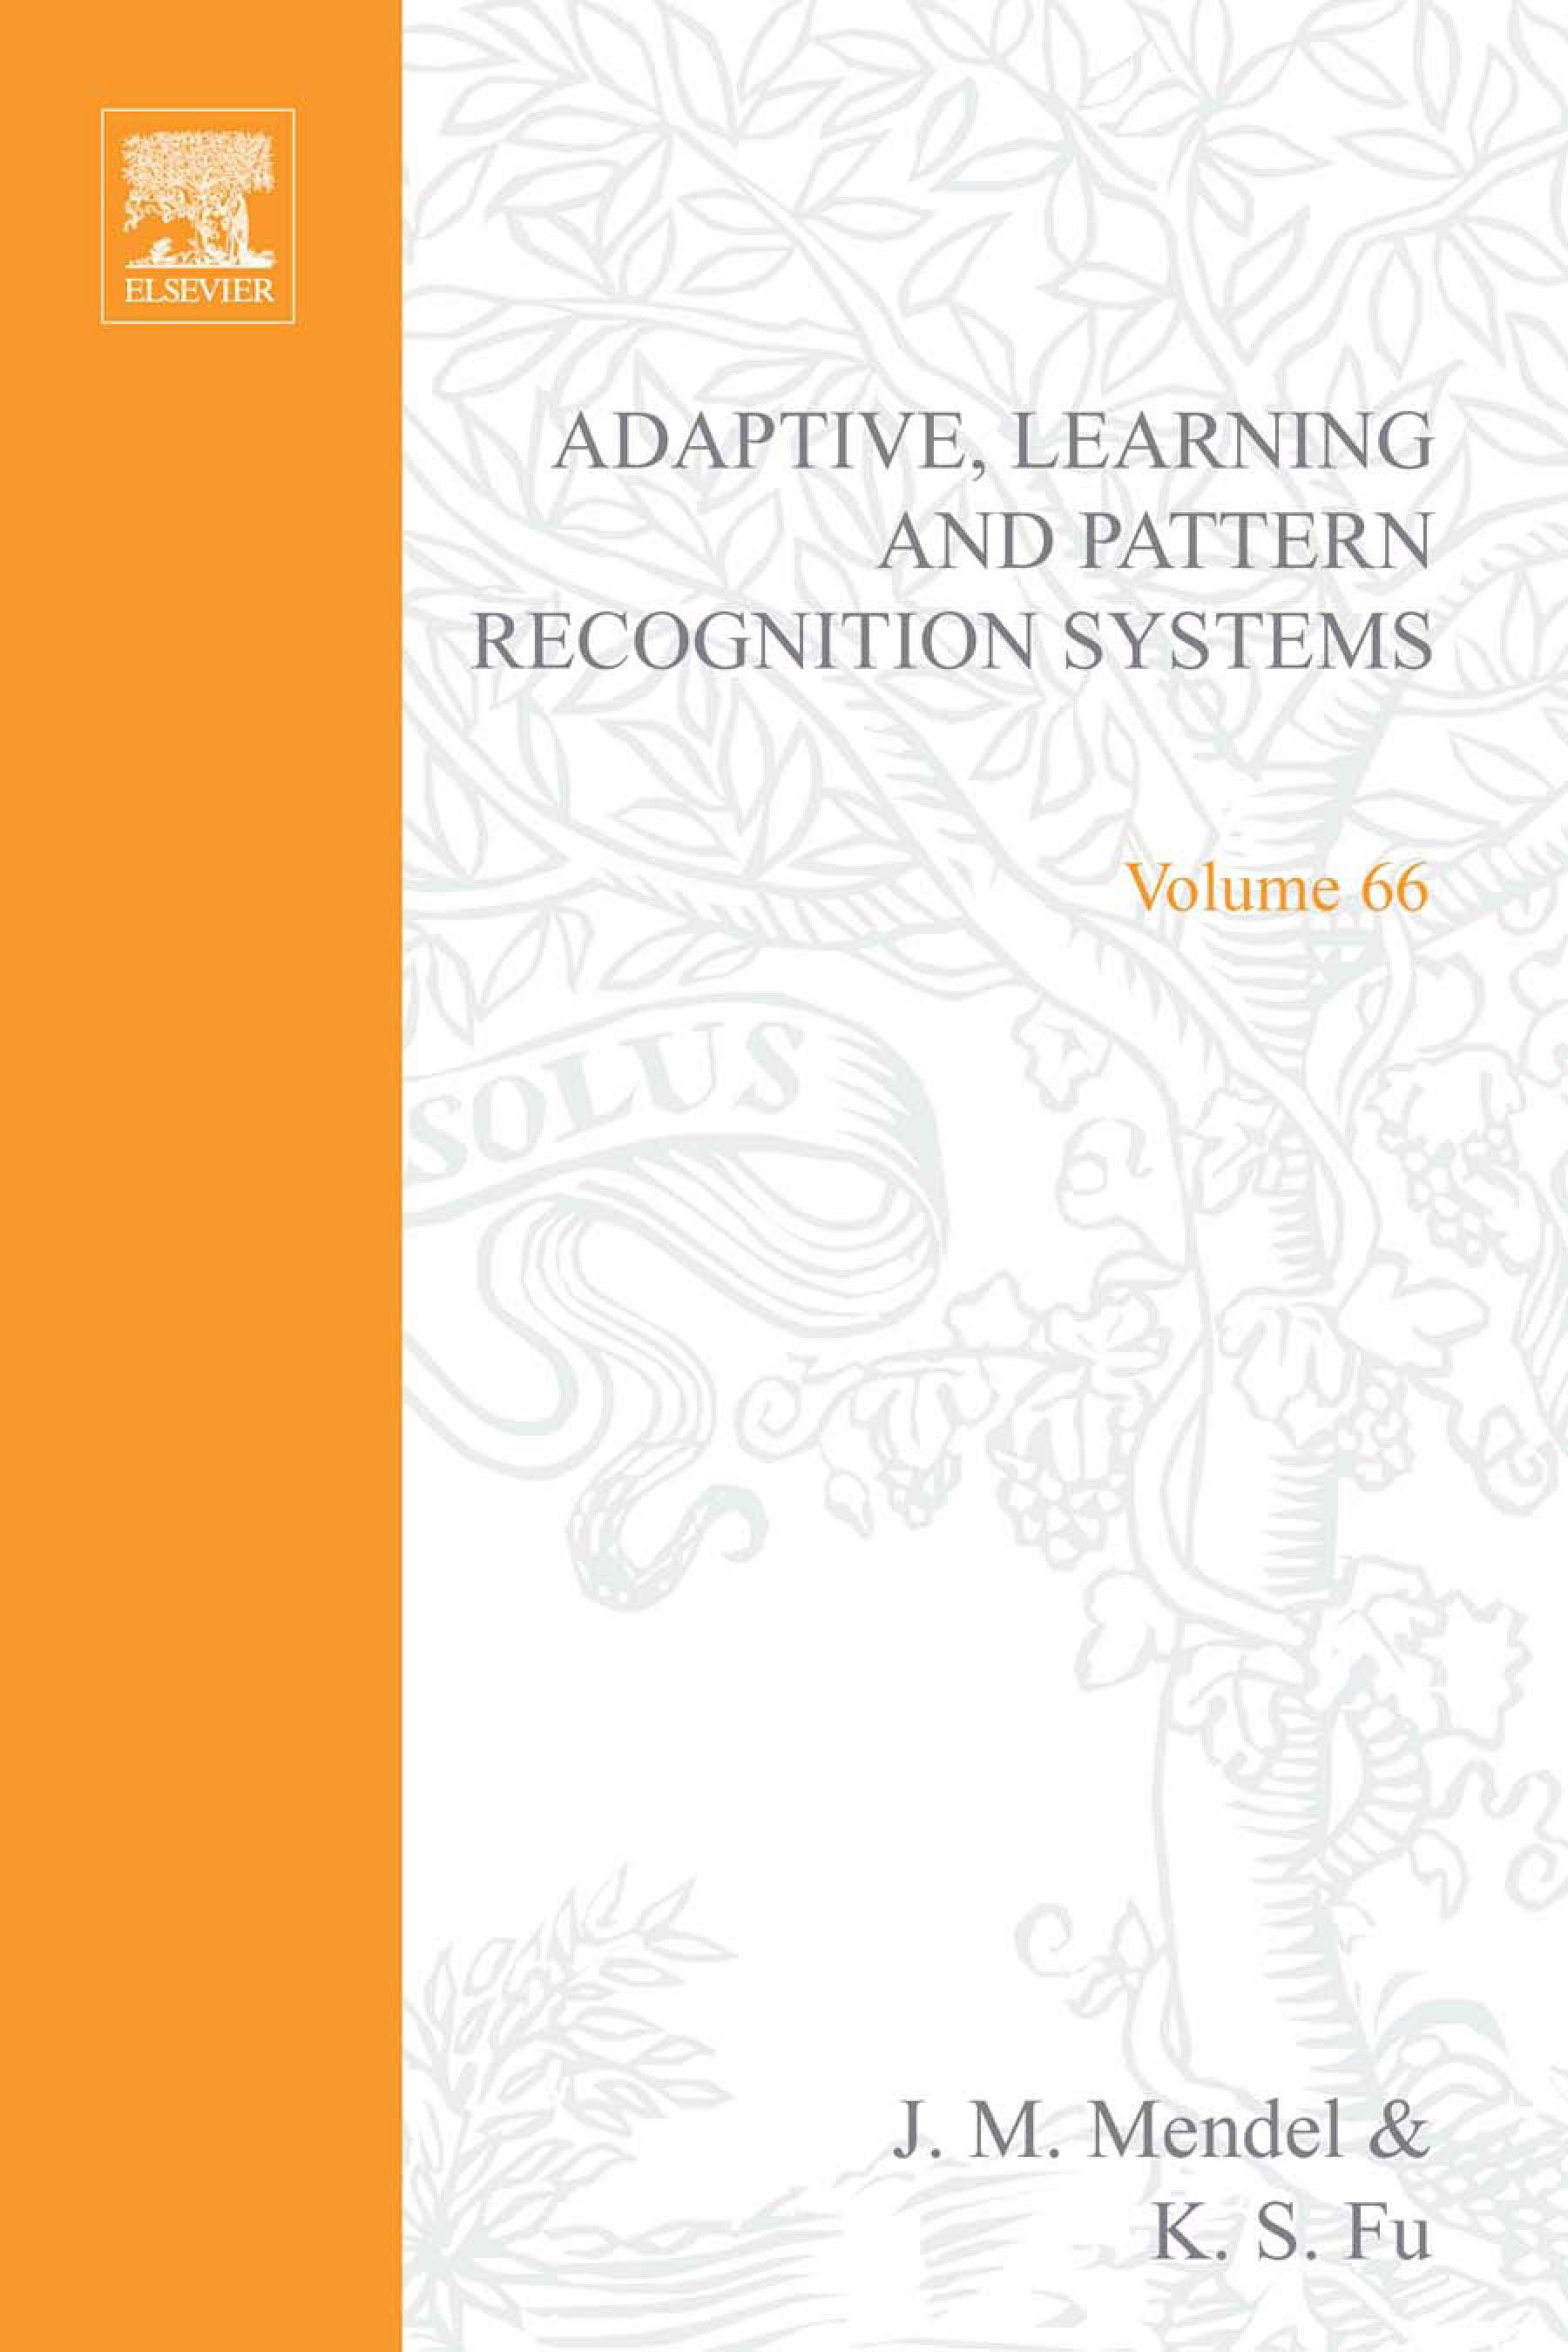 Adaptive, learning, and pattern recognition systems; theory and applications EB9780080955759